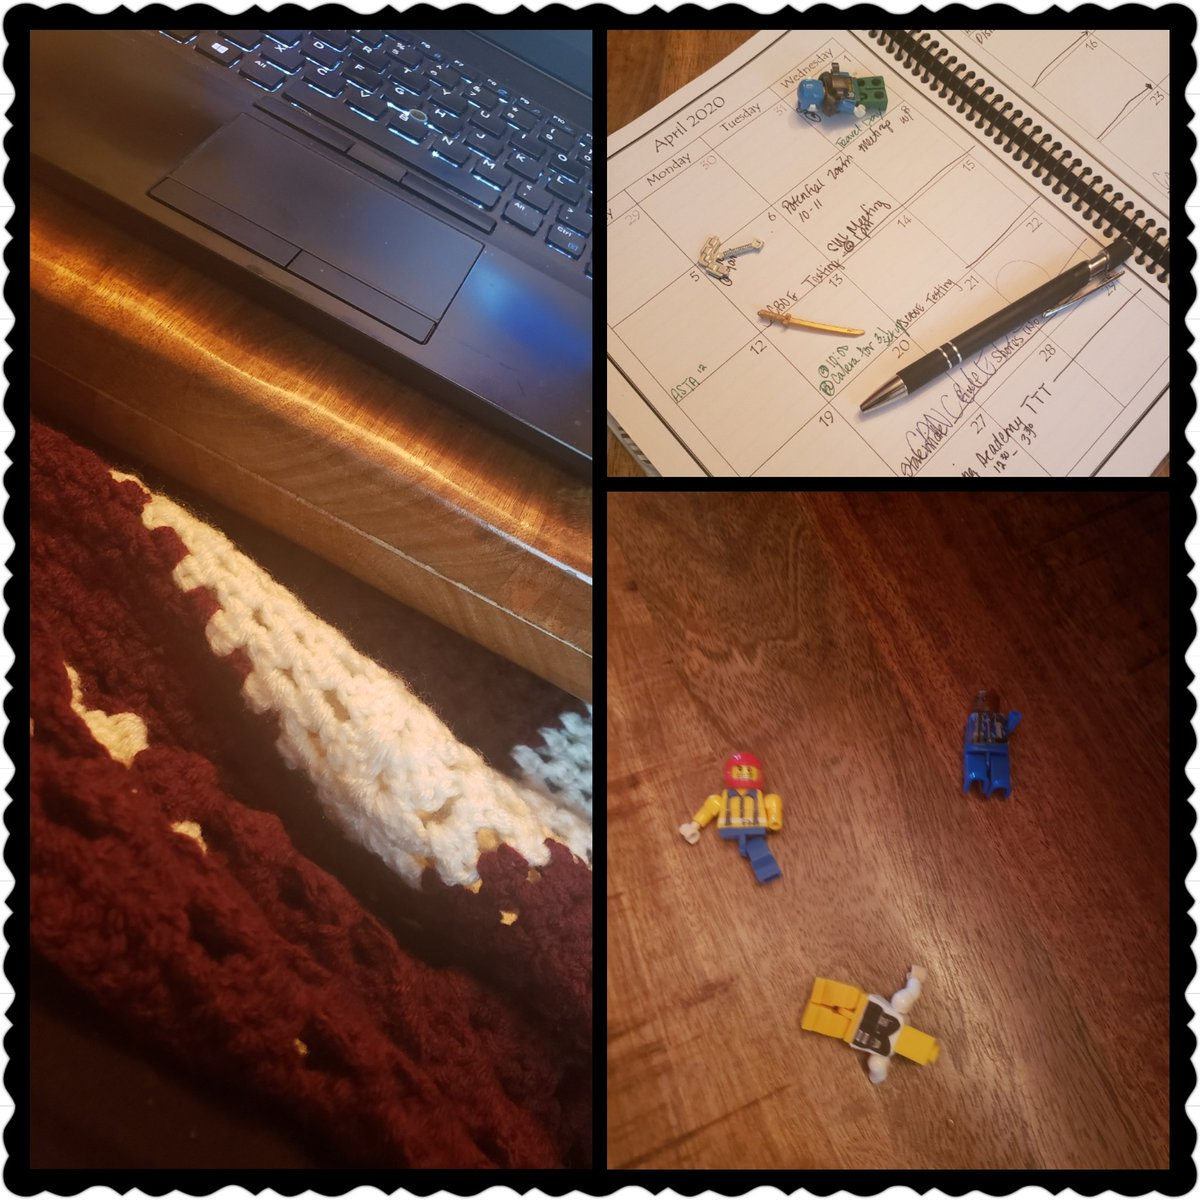 Remote working does have it's perks! Thanks mom for the handmade afghan! And the lego break brought to you by my kindergartener!  #marbrysmadscientists #remotelearning #GROWwiththeflow #humbledbythegiftpic.twitter.com/1yMIF894Rf